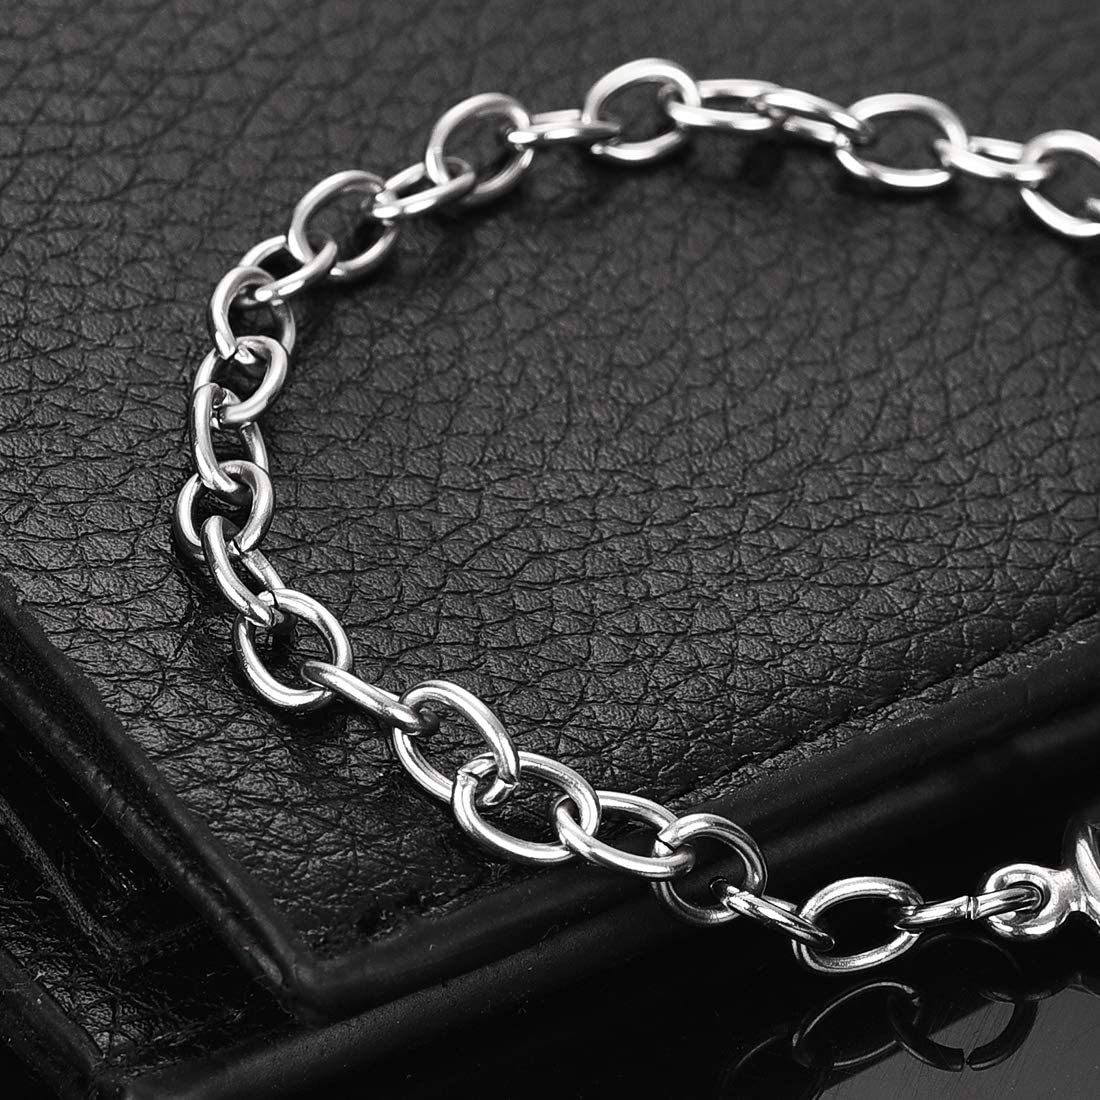 DROLE Bracelet Chain Stainless Steel Cable Link Chain with Toggle Clasp Jewelry Making Chain Bracelet Link 5Pcs Steel Color